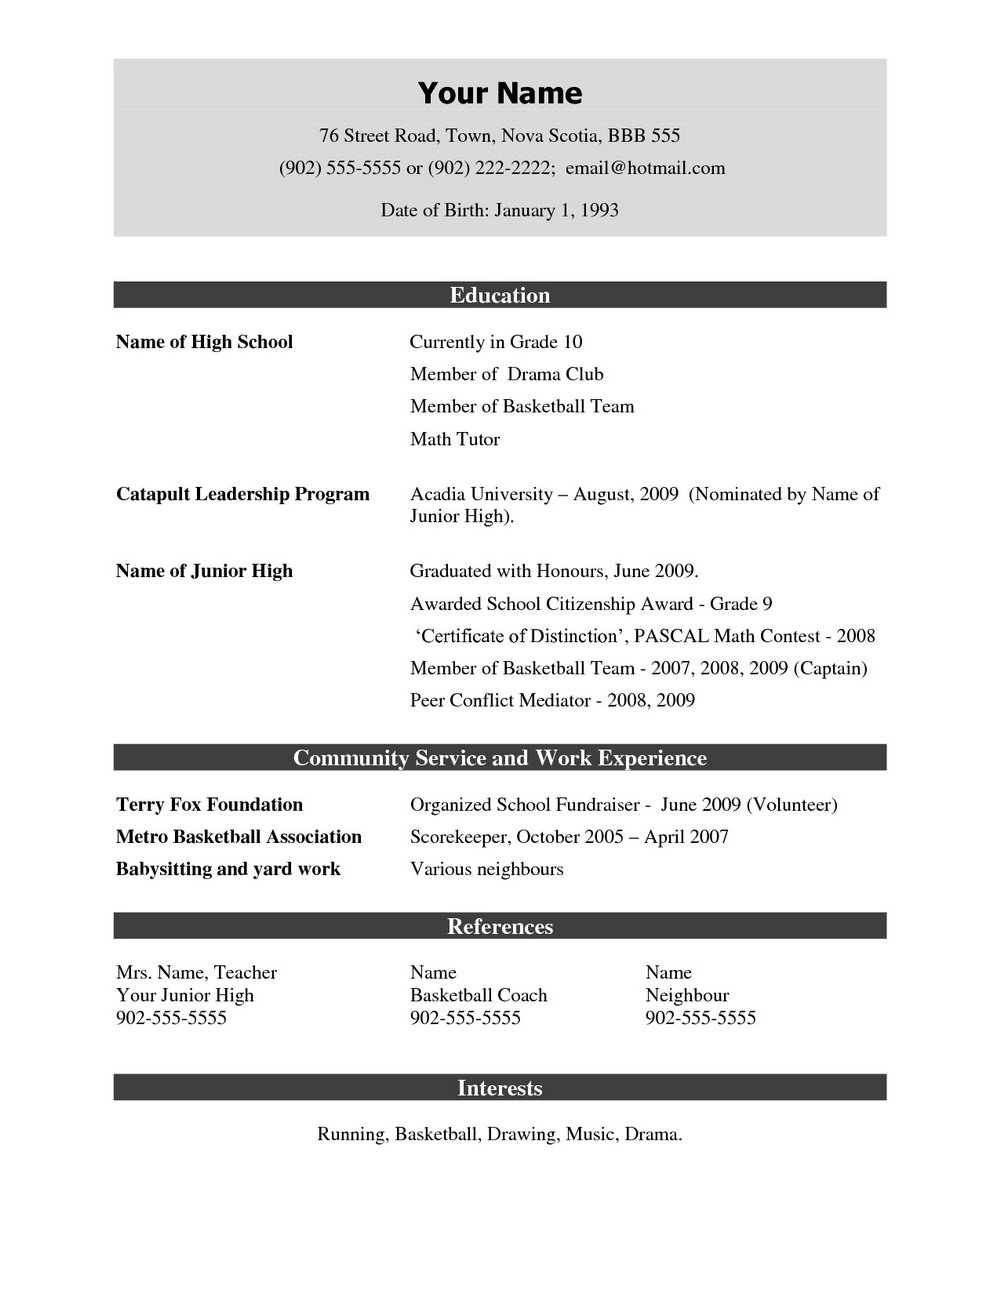 Sample Resume Format Download In Ms Word 2007